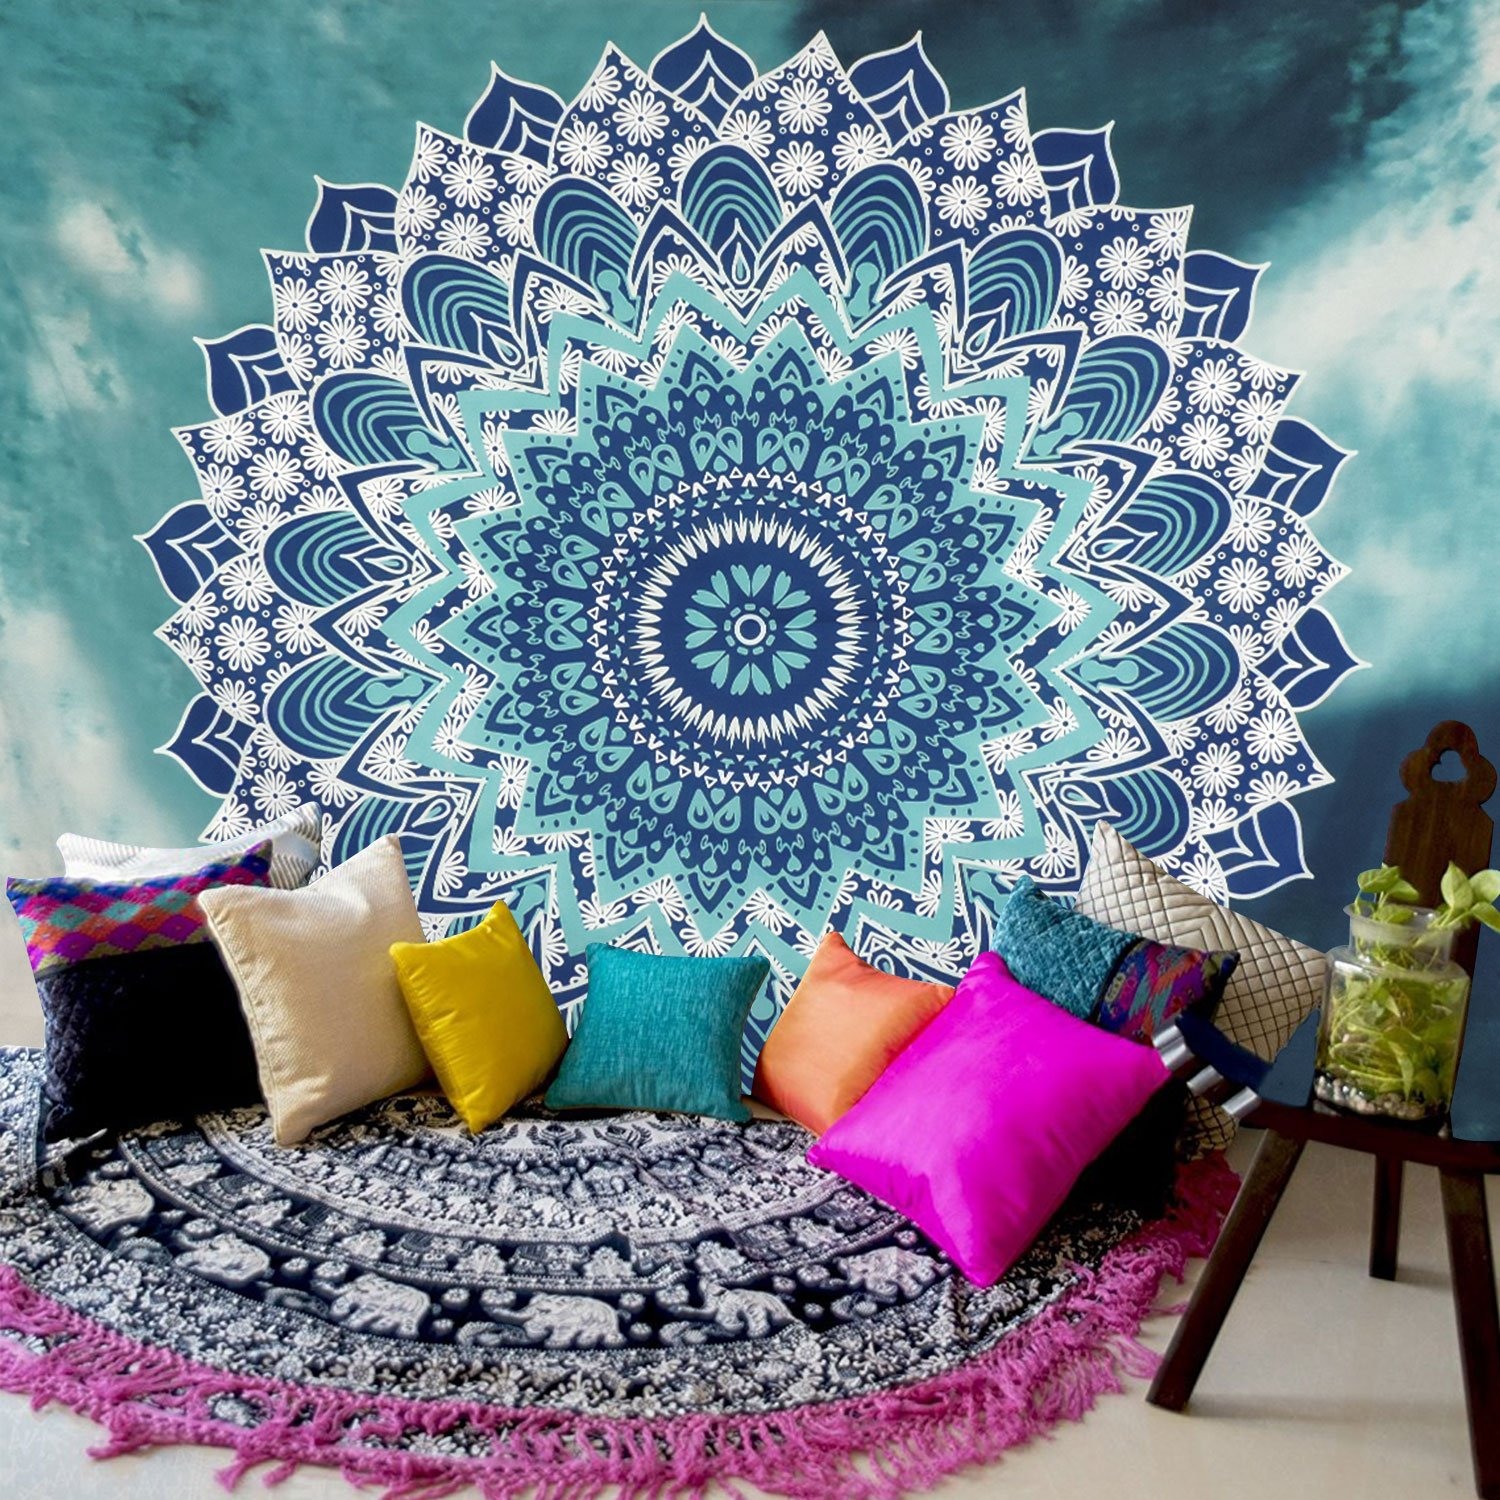 Amazoncom Sunm Boutique Tapestry Wall Hanging Indian Mandala Tapestry Bohemian